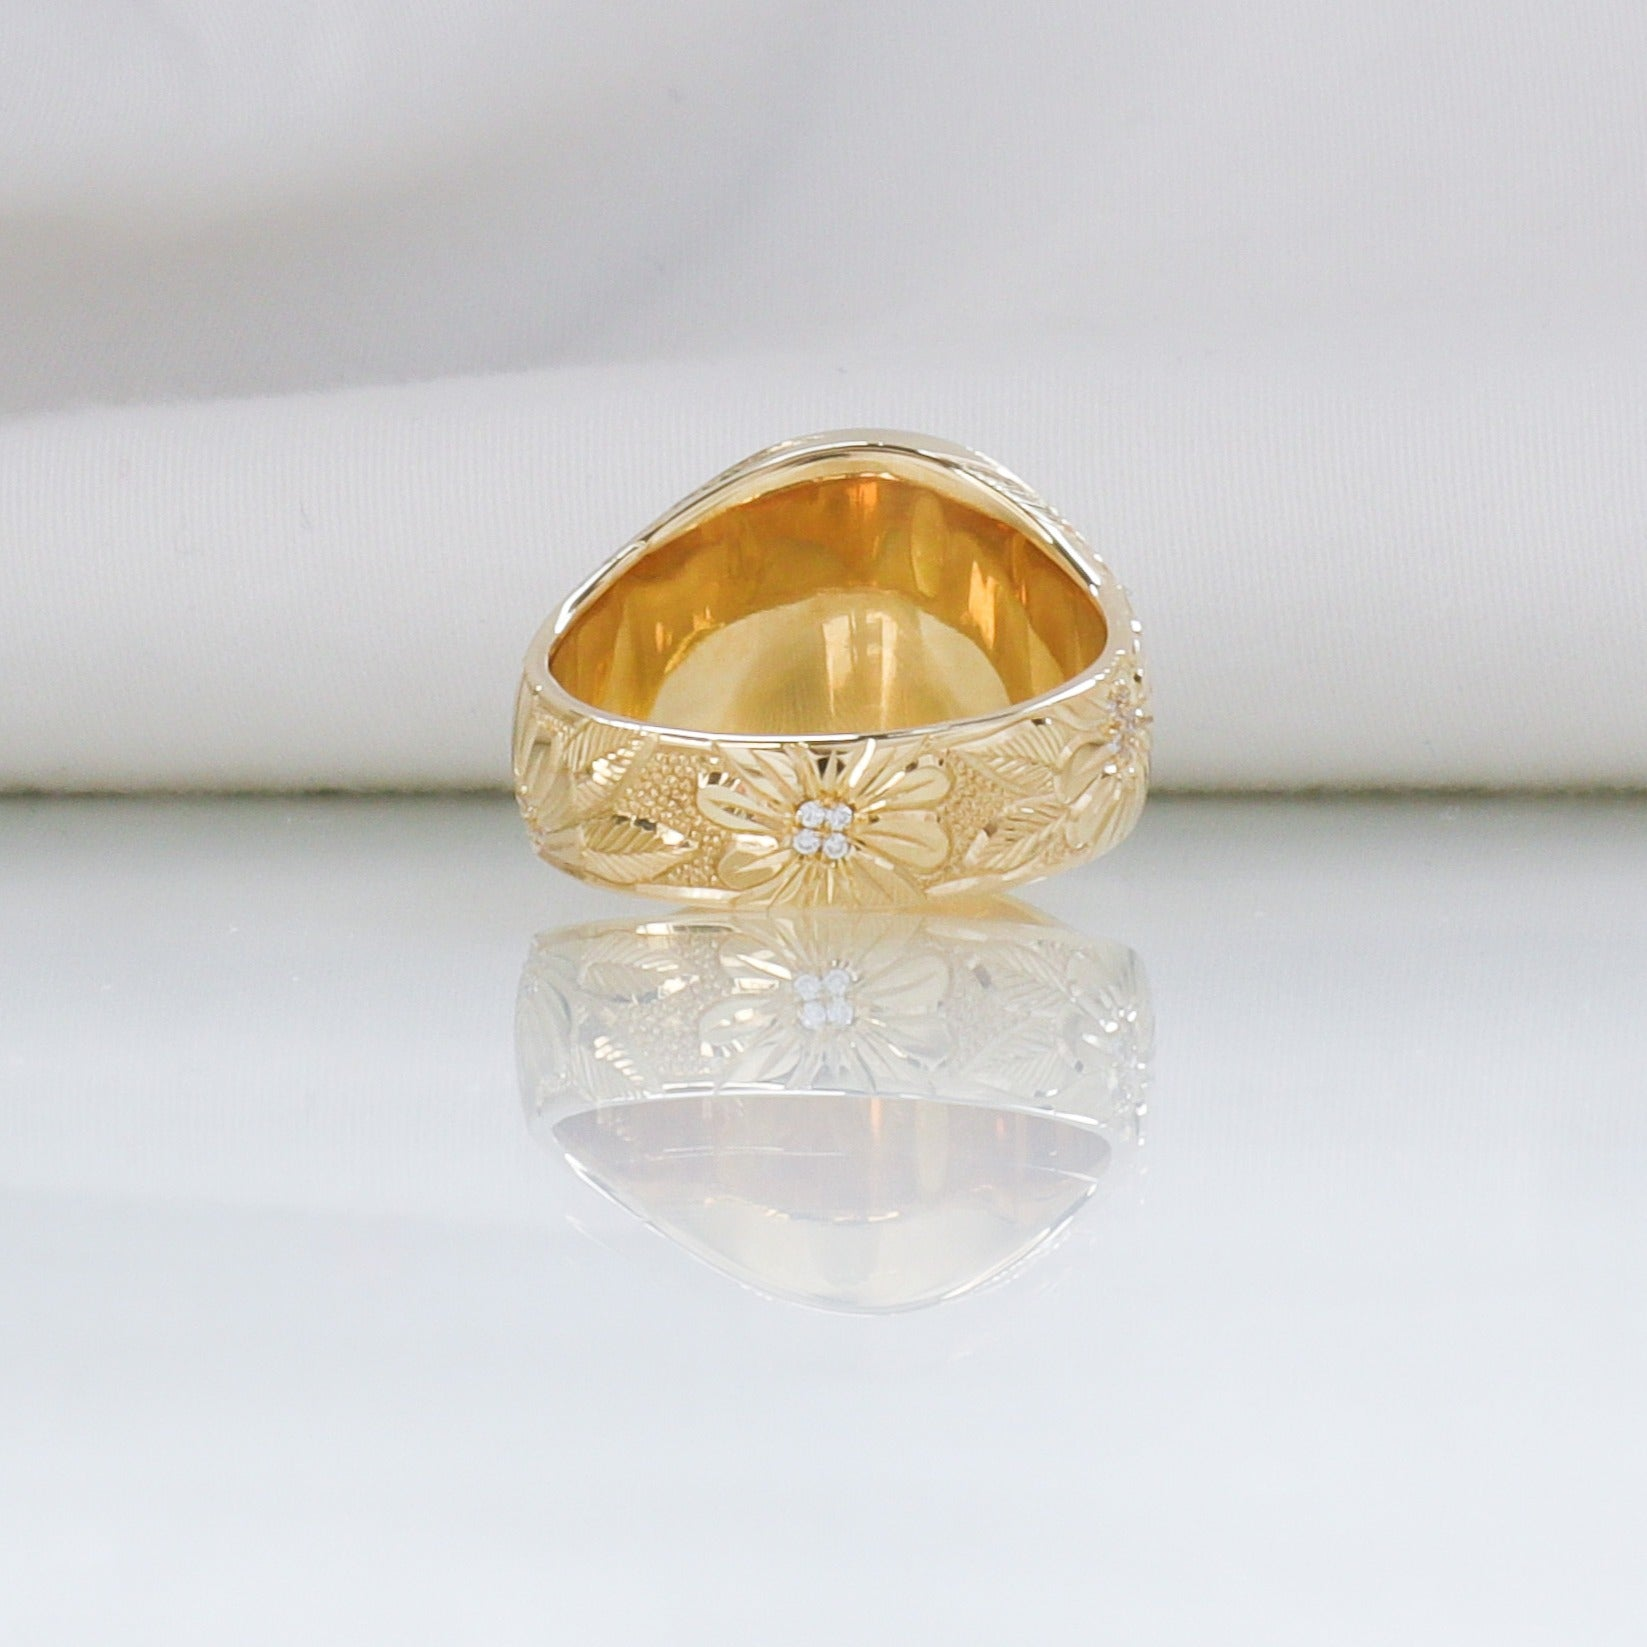 Sunrise Signet Ring